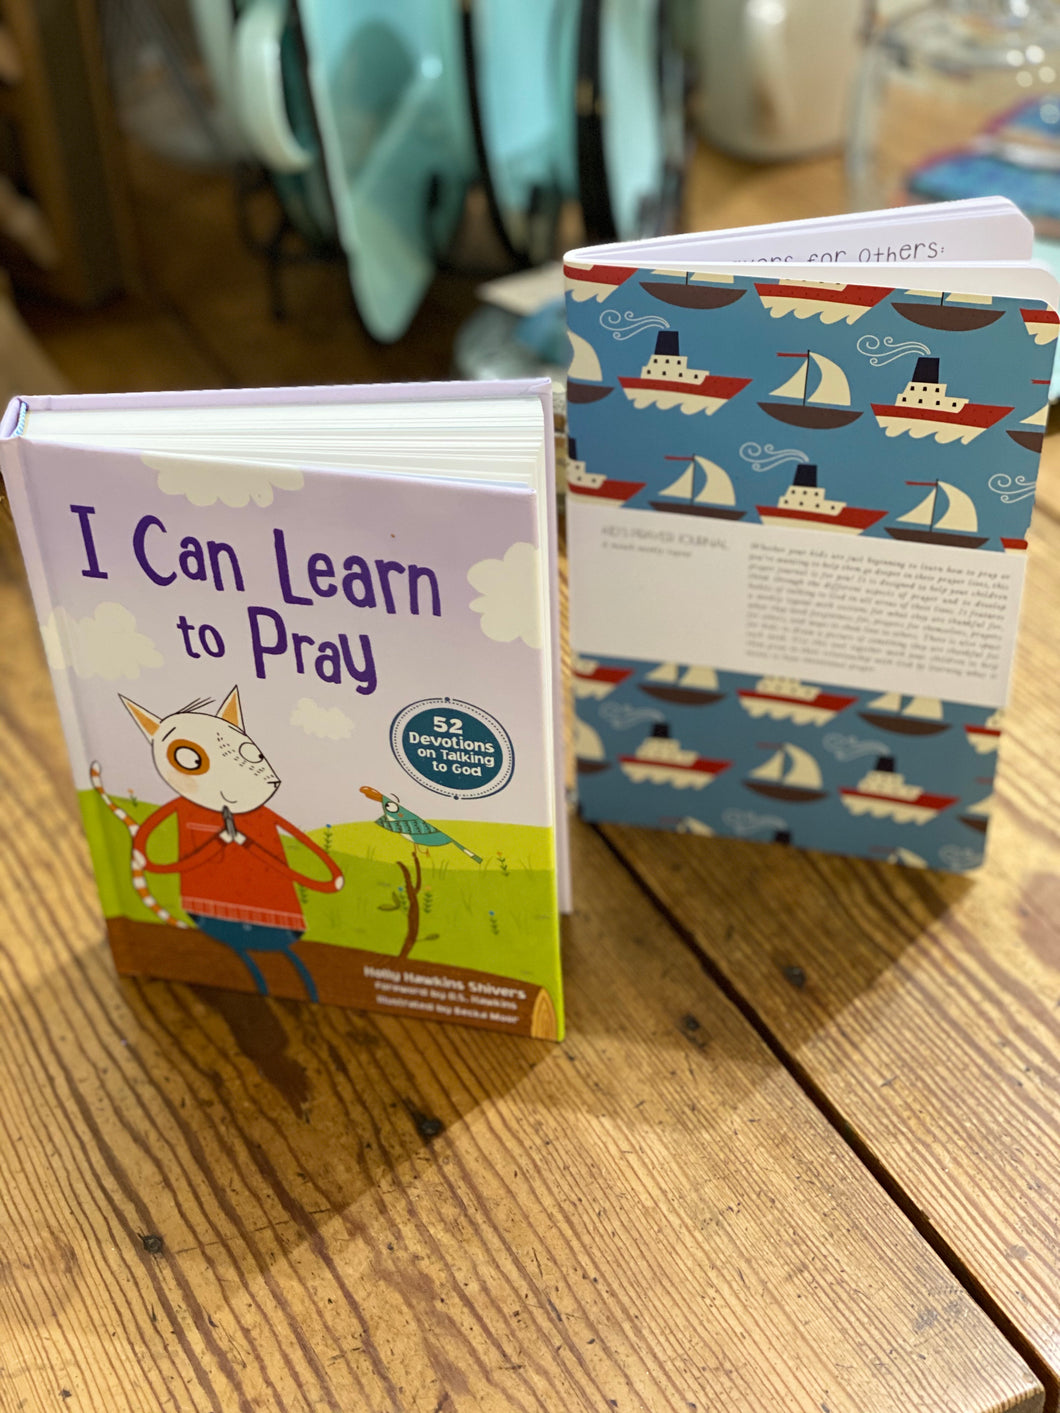 I CAN LEARN TO PRAY BOOK